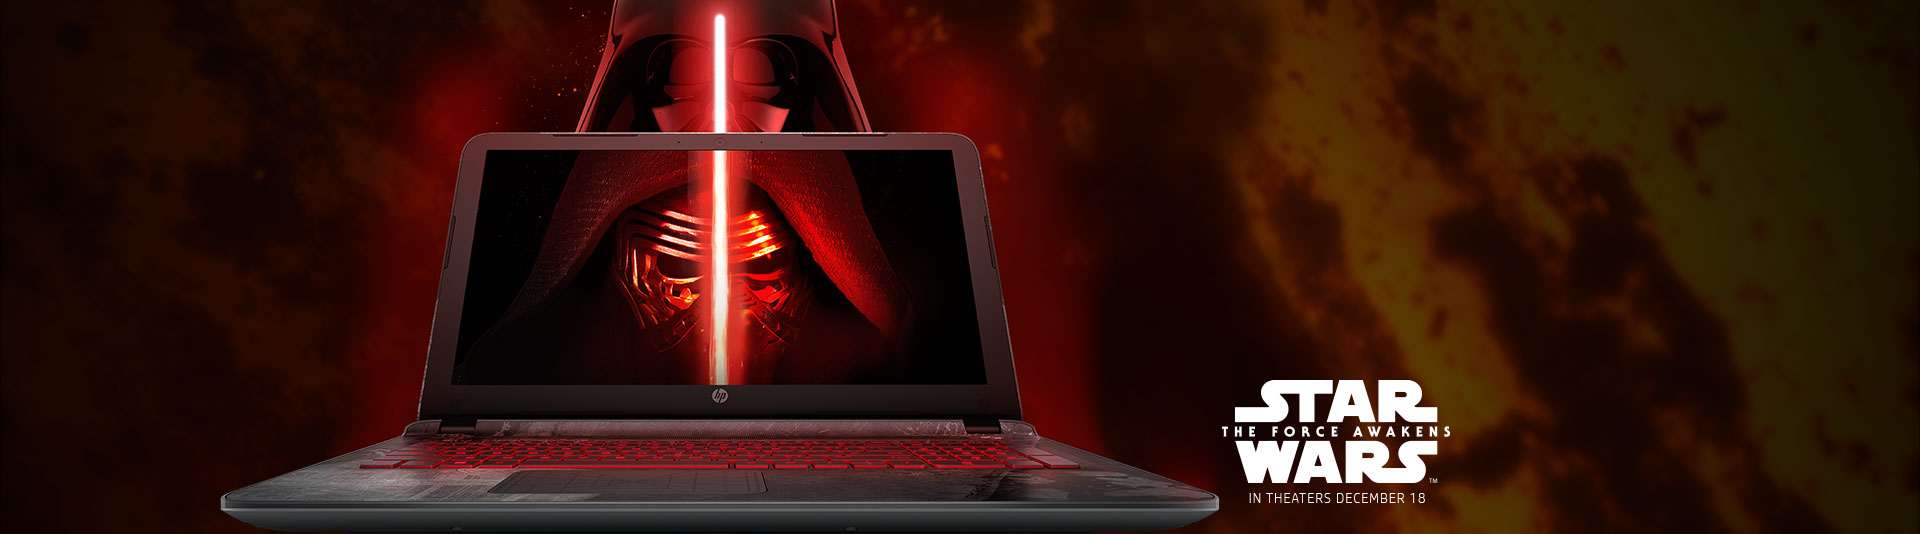 Star Wars Special Edition Gaming Notebook Hp Official Site